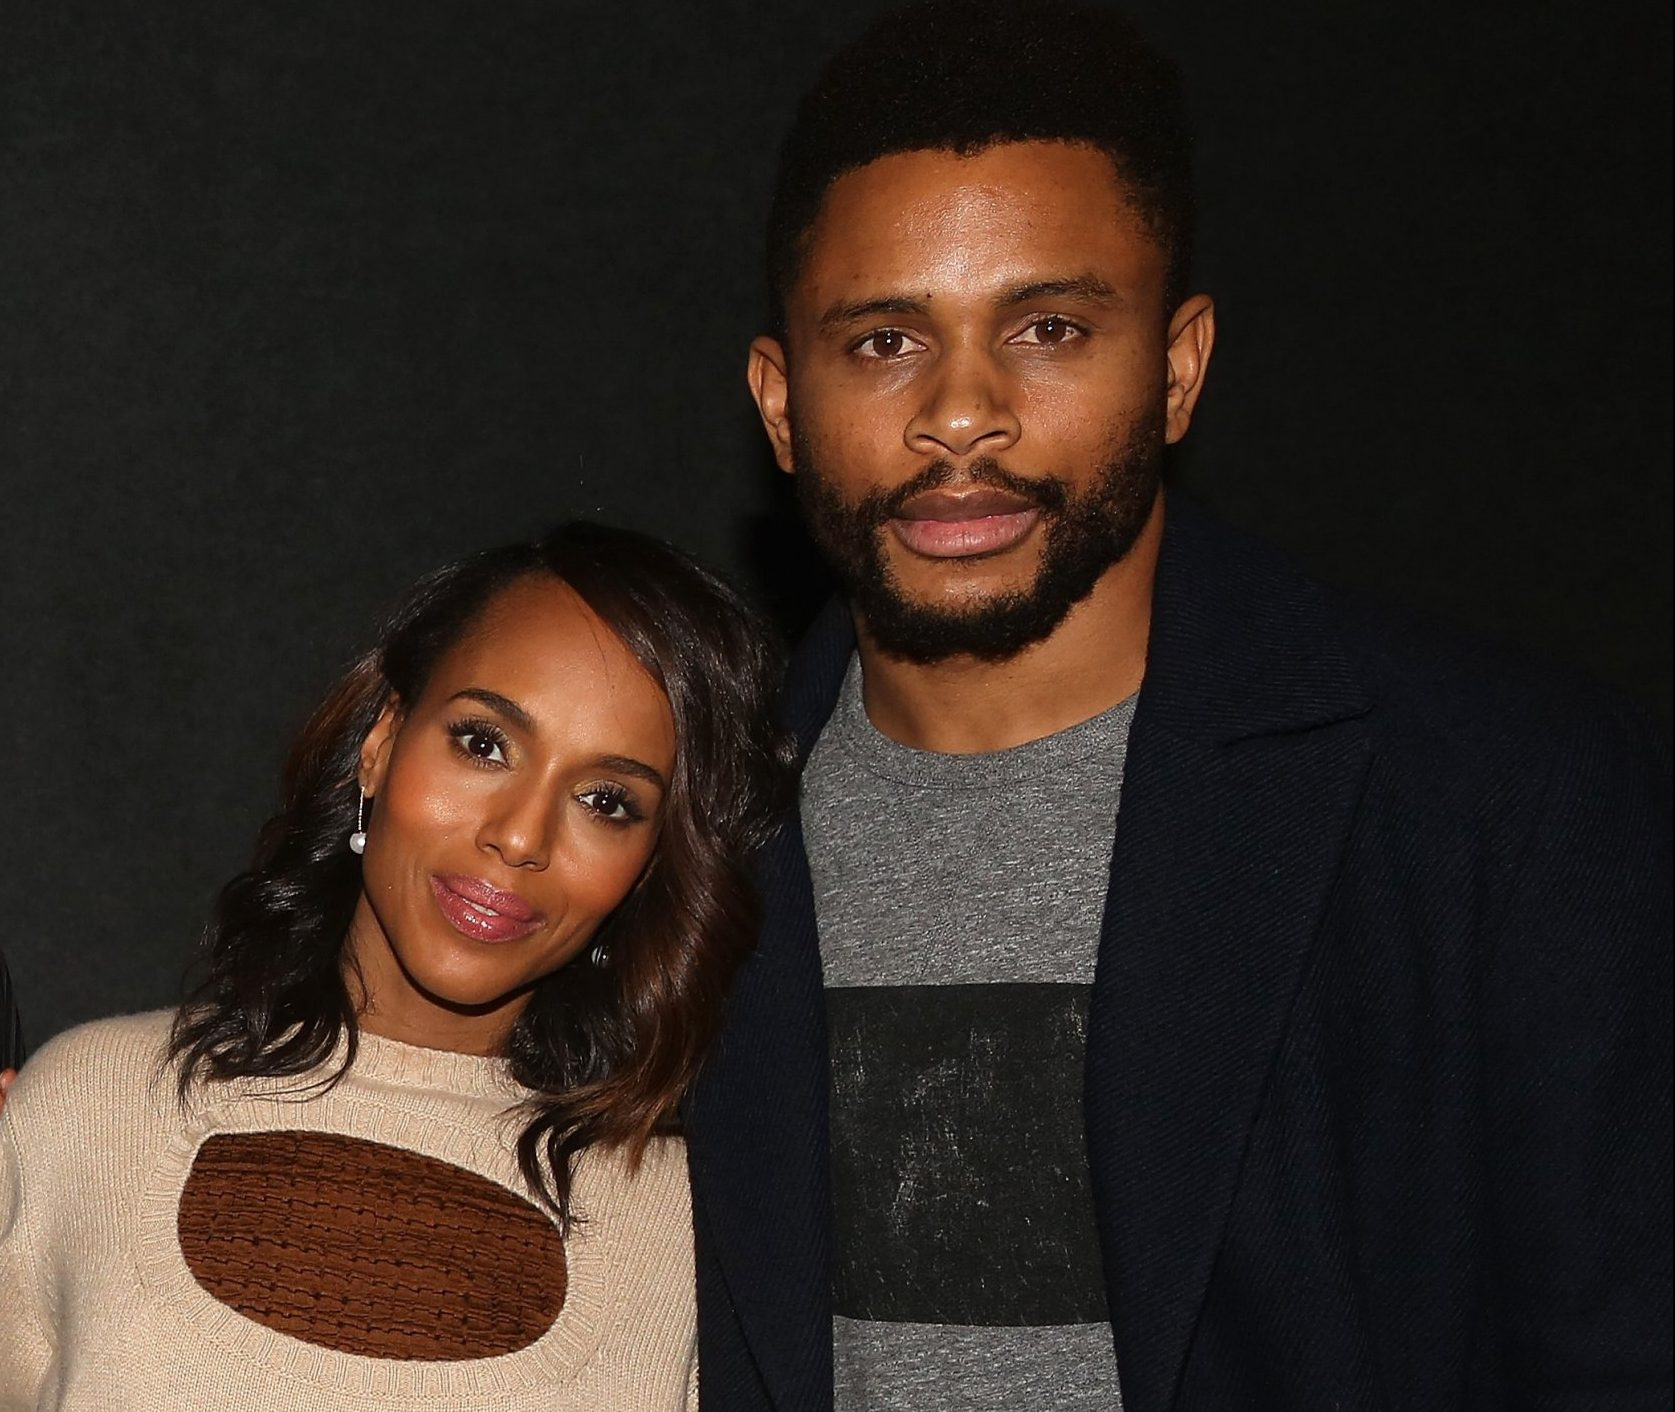 """NEW YORK, NY - NOVEMBER 26: Kerry Washington and husband Nnamdi Asomugha pose at a screening for Annapurna Pictures film """"If Beale Street Could Talk"""" hosted by Kerry Washington at Landmark 57 Theatre on November 26, 2018 in New York City. (Photo by Bruce Glikas/Bruce Glikas/Getty Images)"""